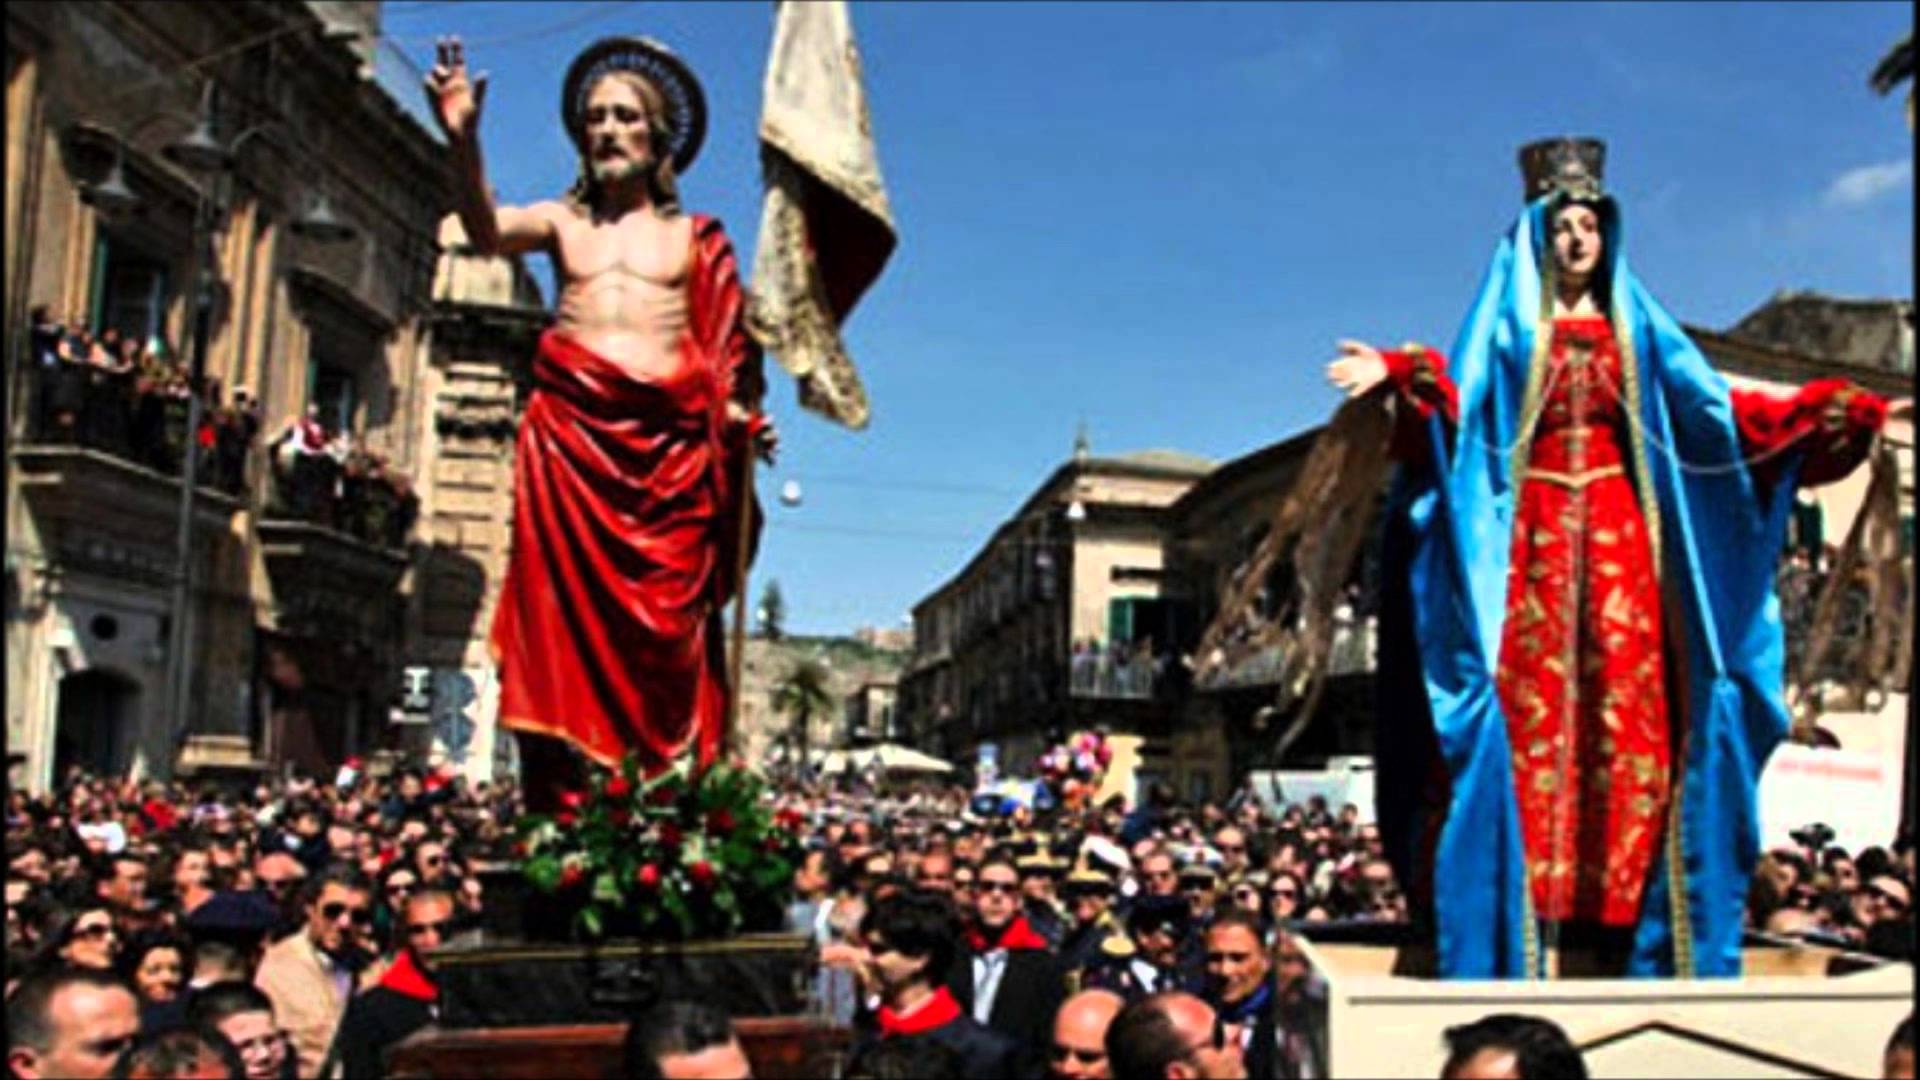 Holy Week in Sicily